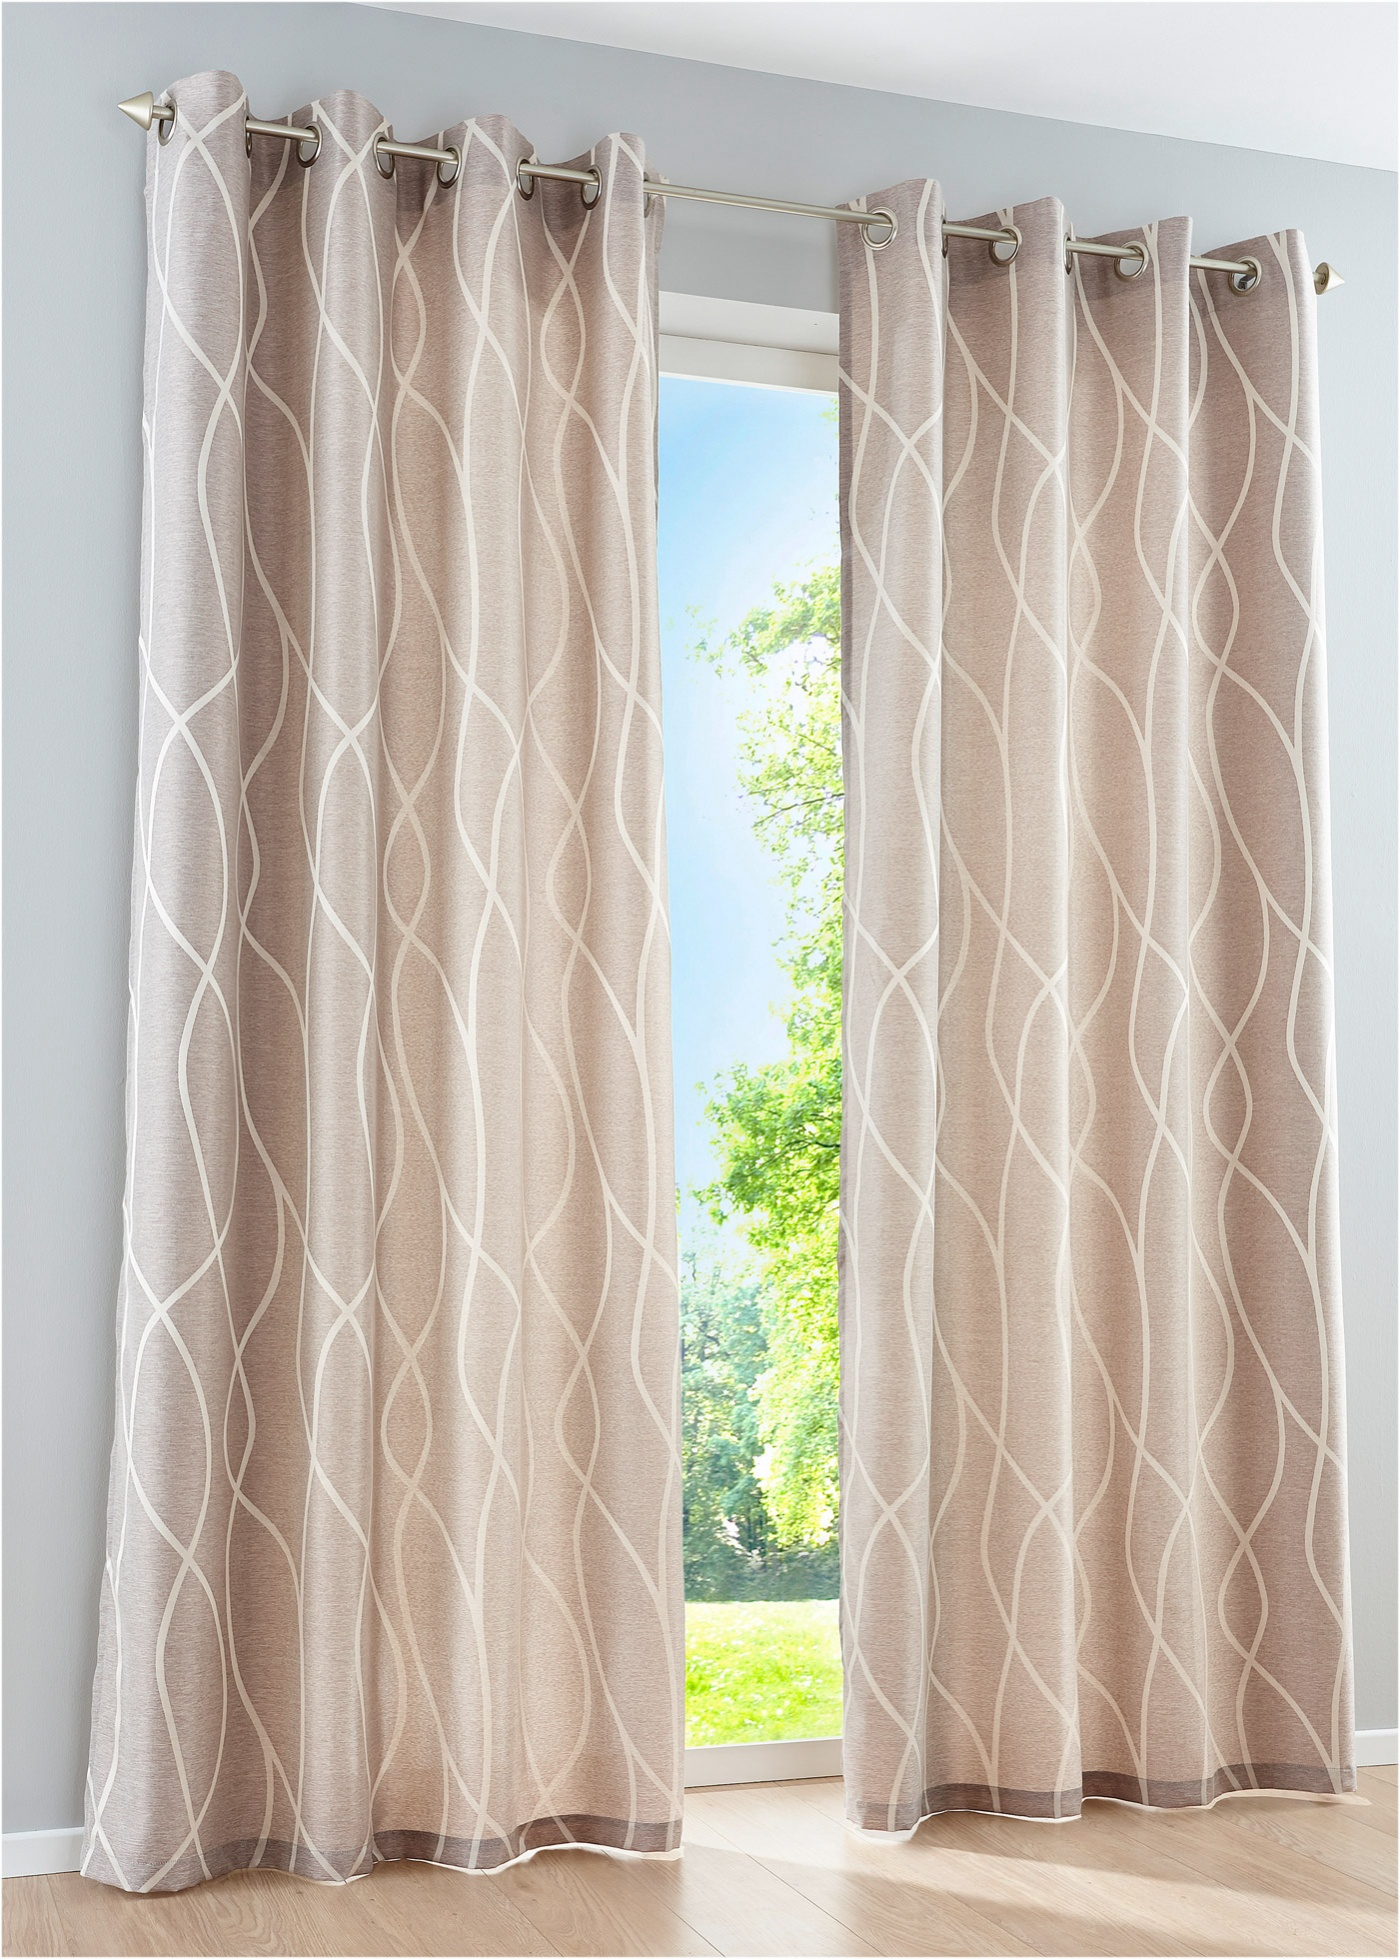 CHAMI CURTAIN Gardin 1-pack